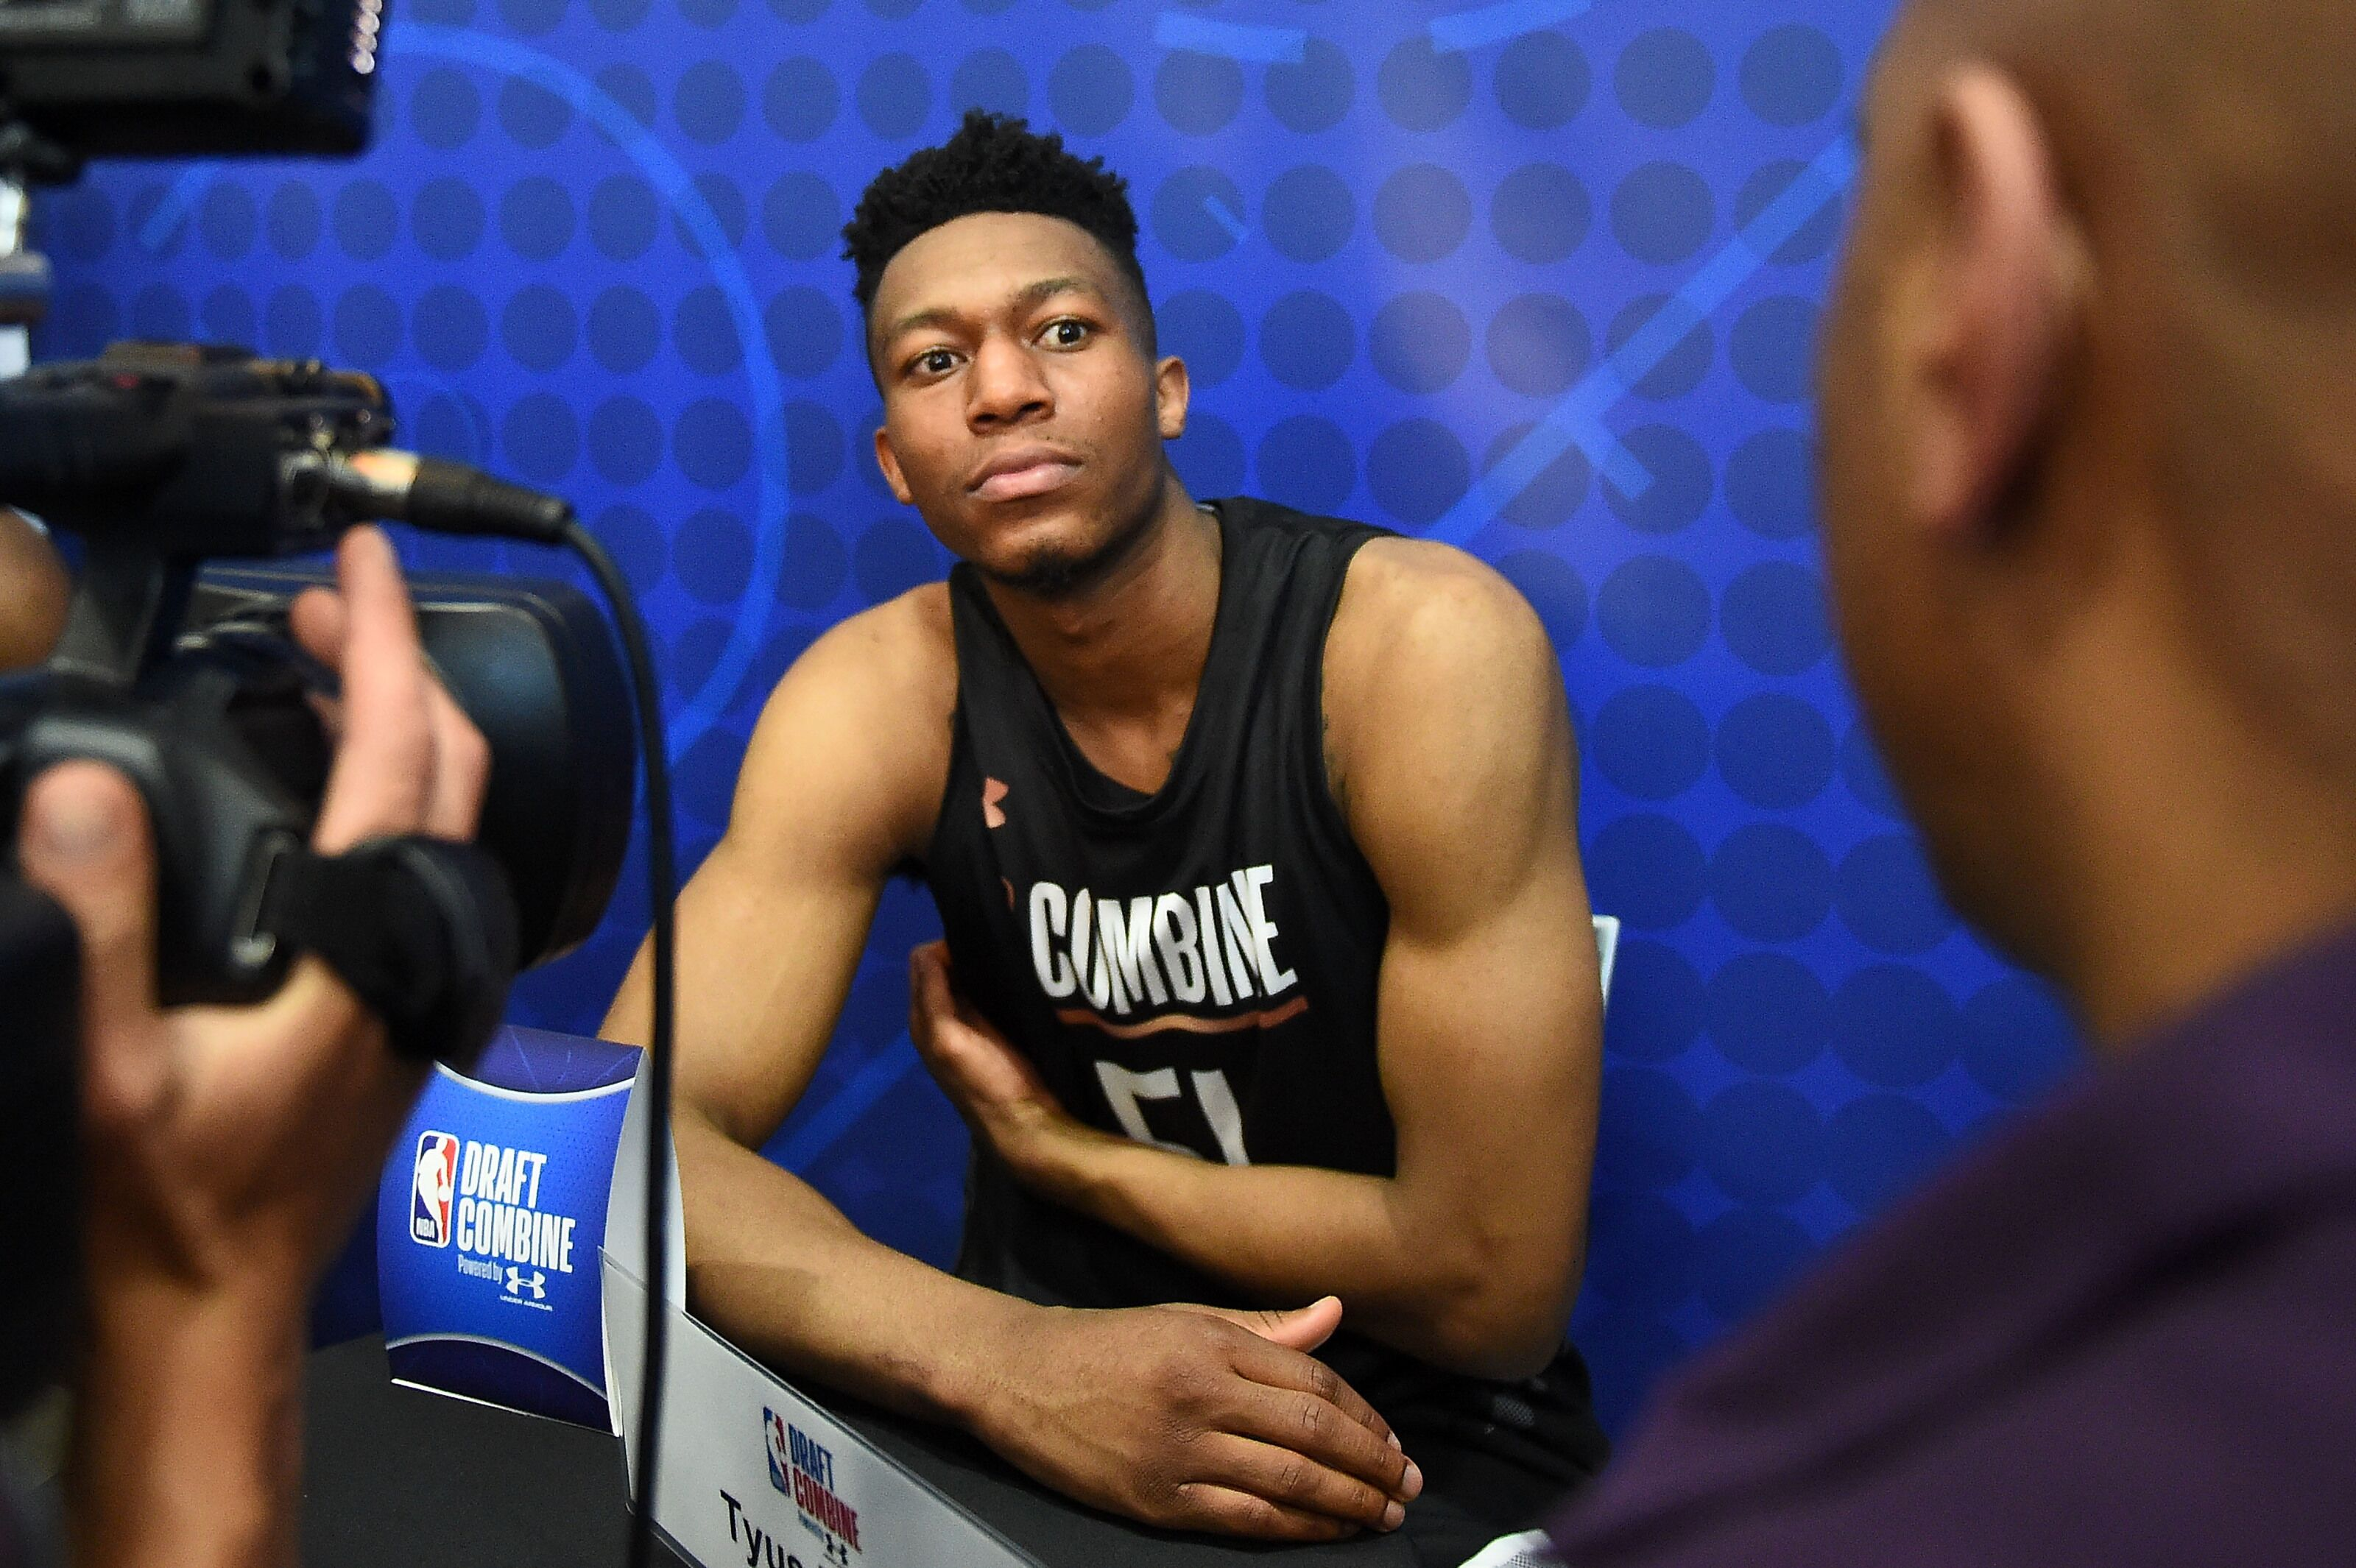 Syracuse Basketball: No combine invite for Tyus Battle is a